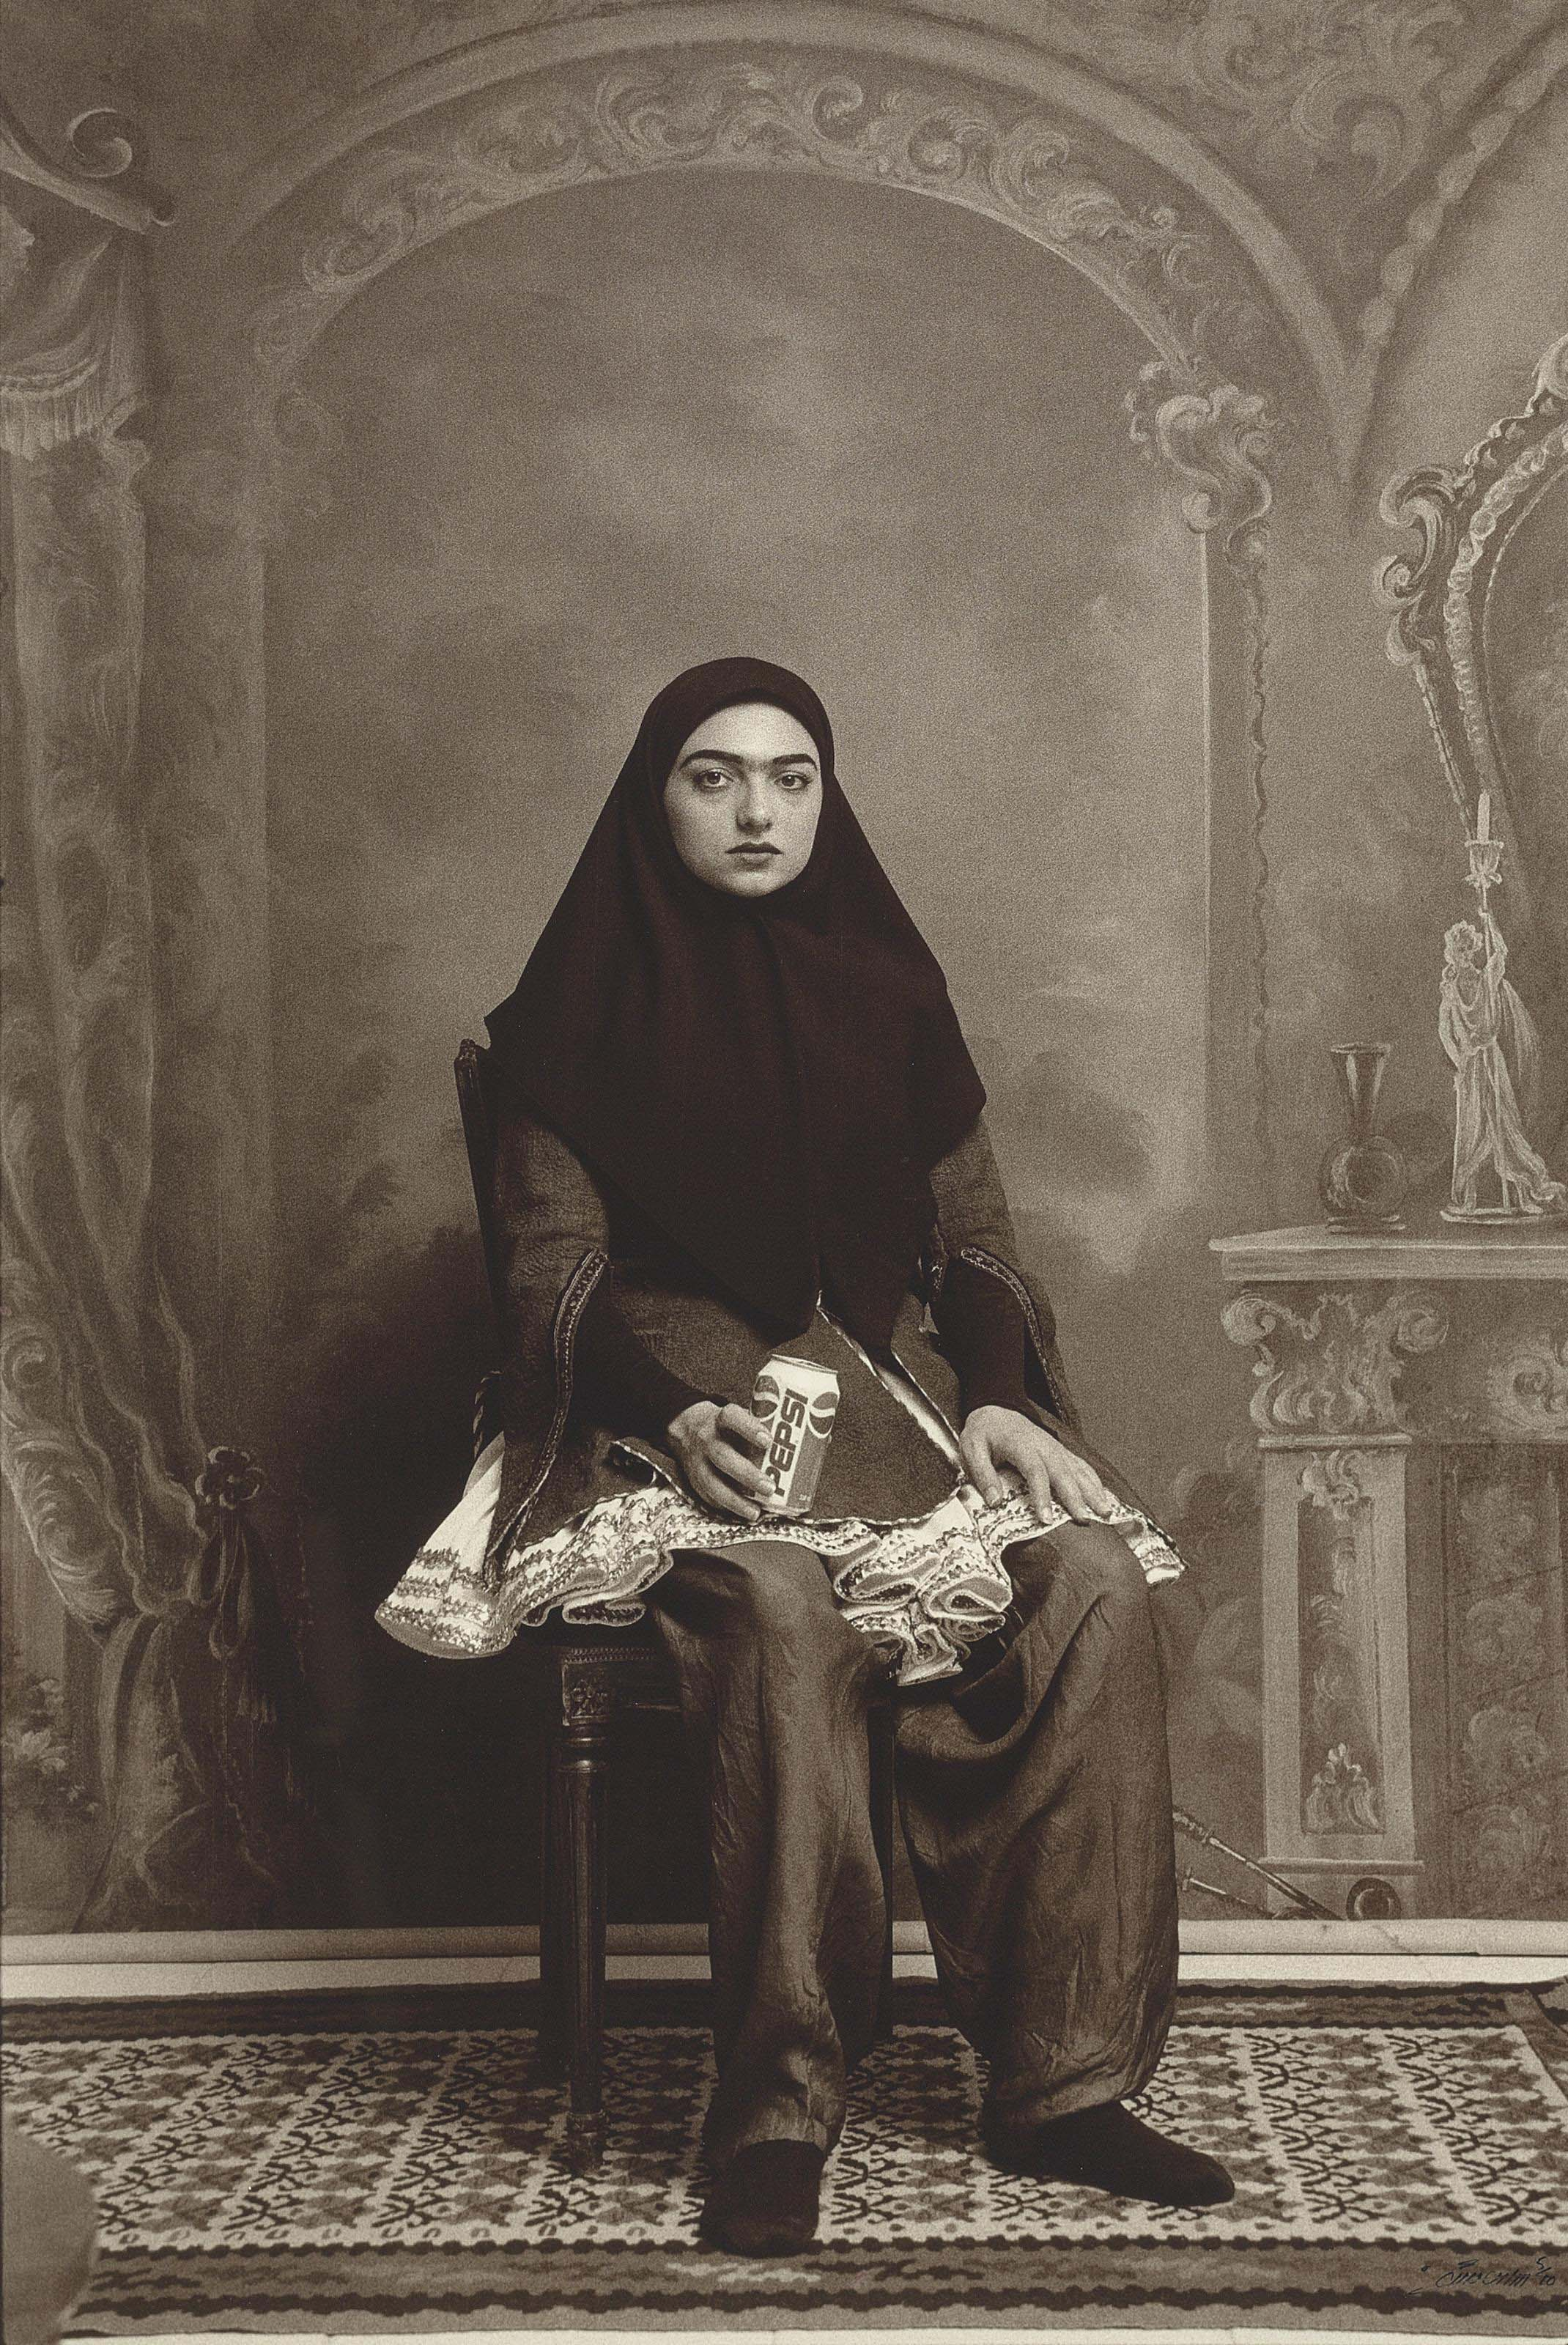 Untitled (from the Qajar series)